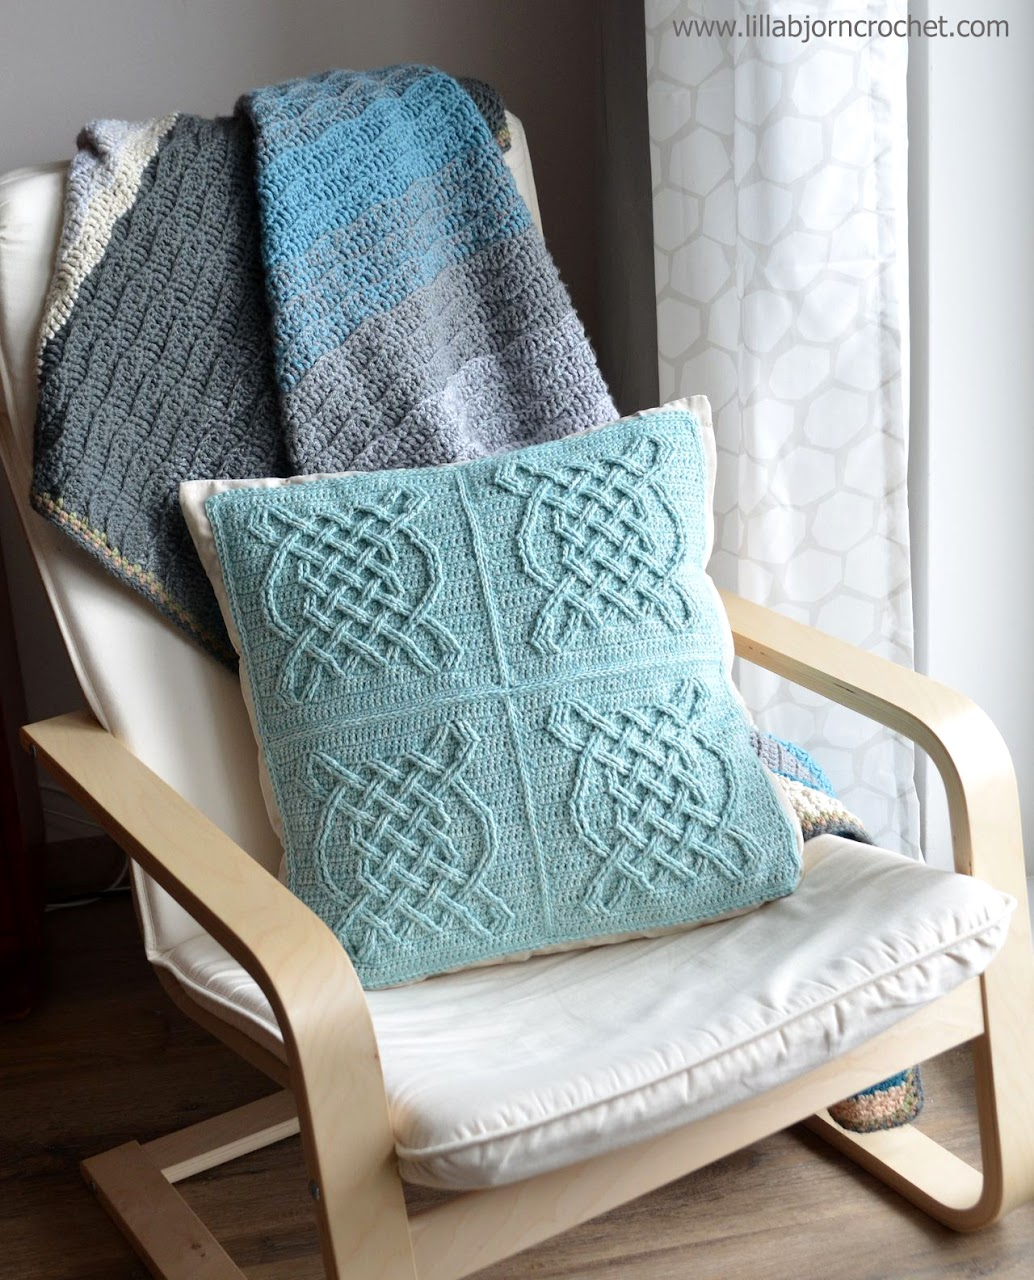 Celtic Tiles pillow - FREE overlay crochet pattern by Lilla Bjorn